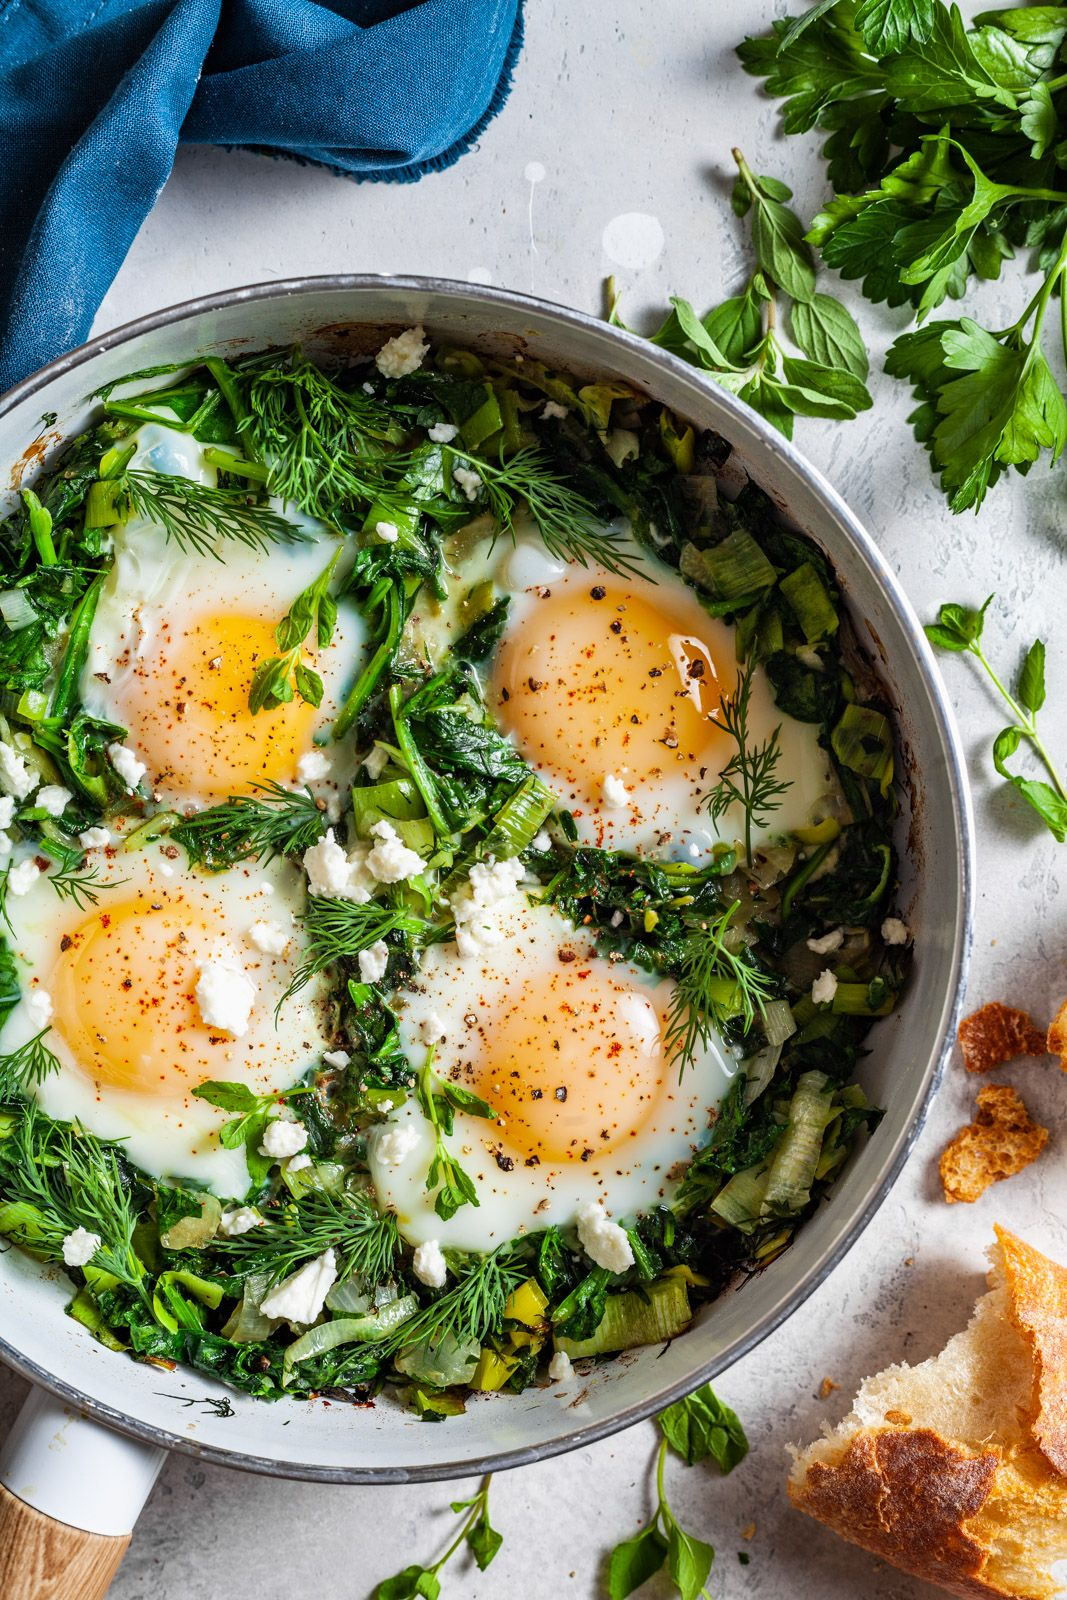 Green Shakshuka Recipe in 2020 Shakshuka recipes, Food